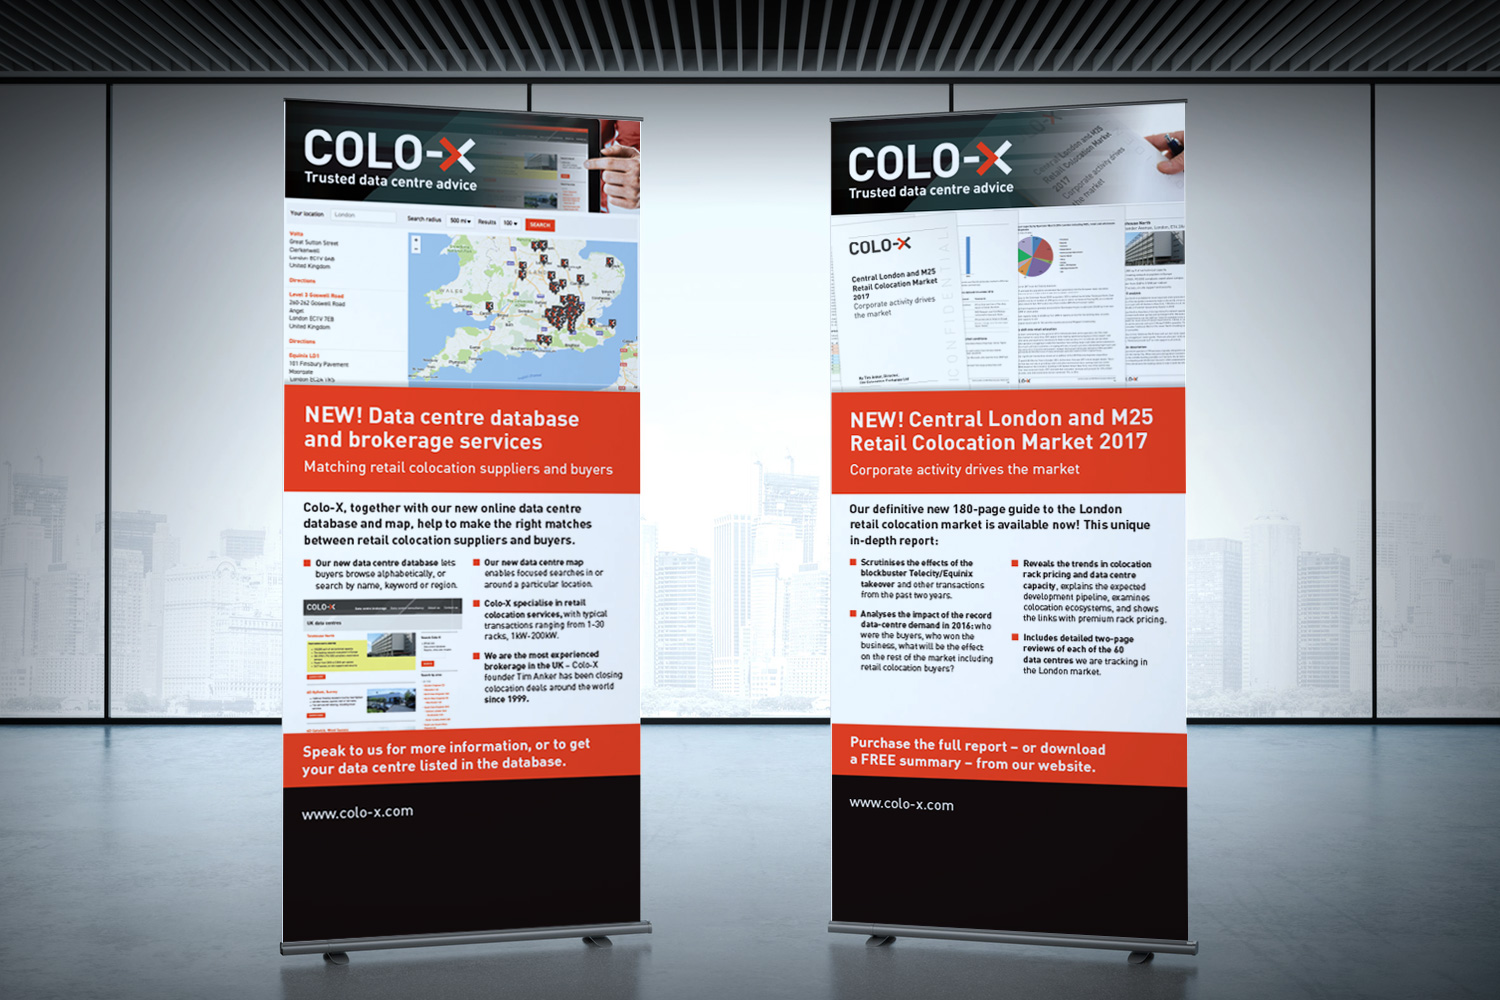 Colo-X exhibition banners